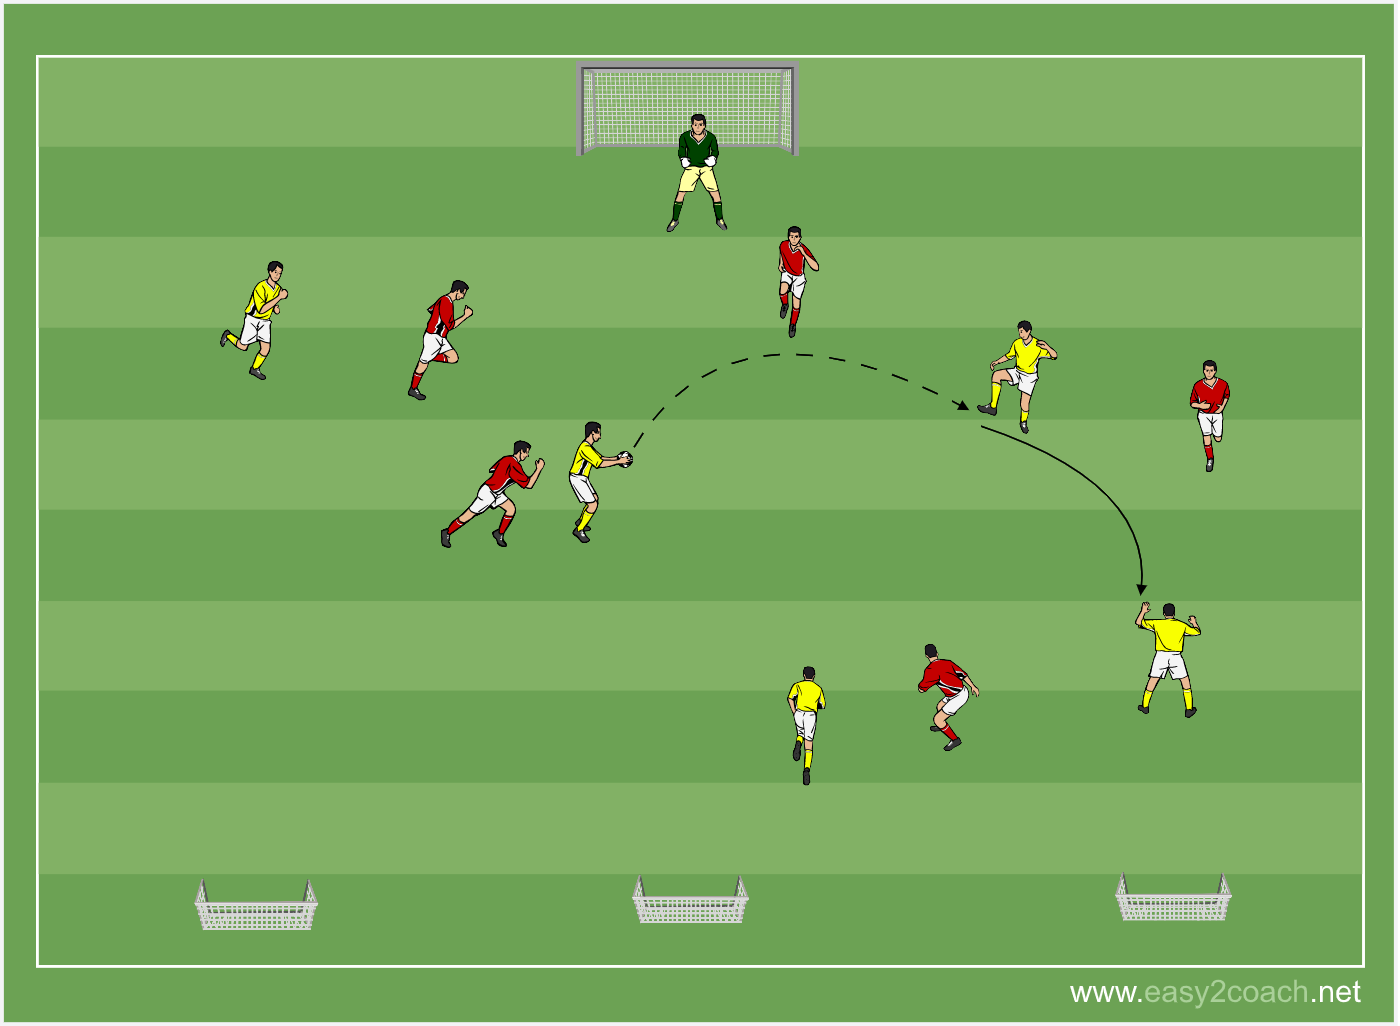 Handballvolleying_game_(warm-up).png